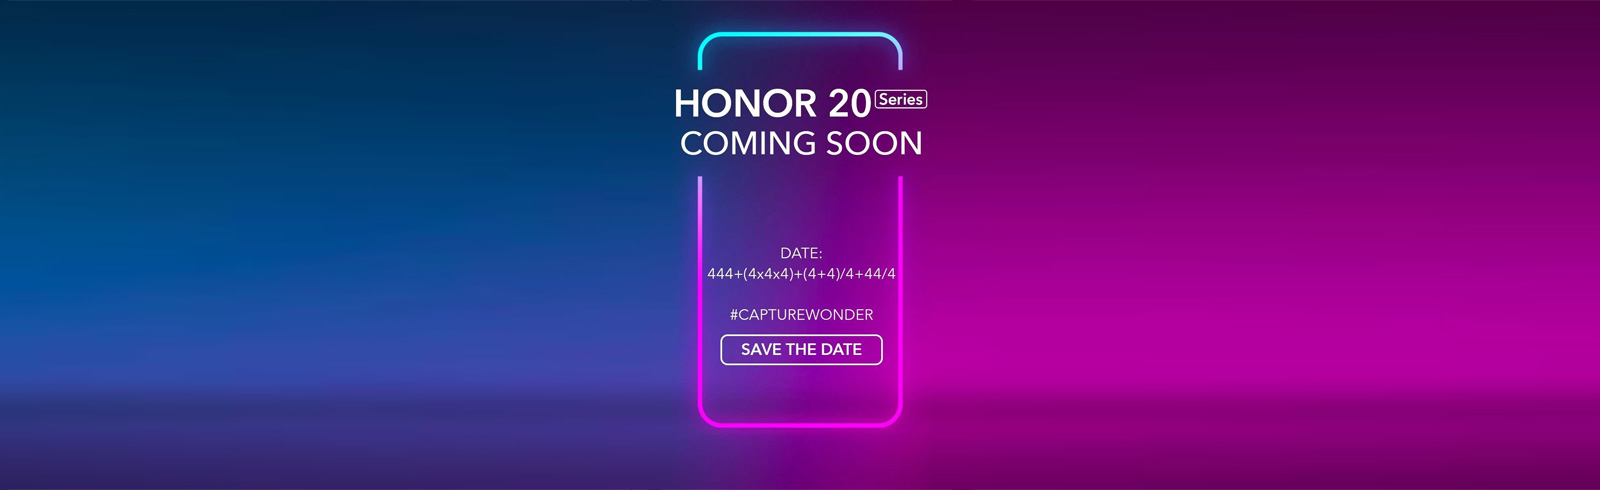 The Honor 20 series global launch is scheduled for May 21